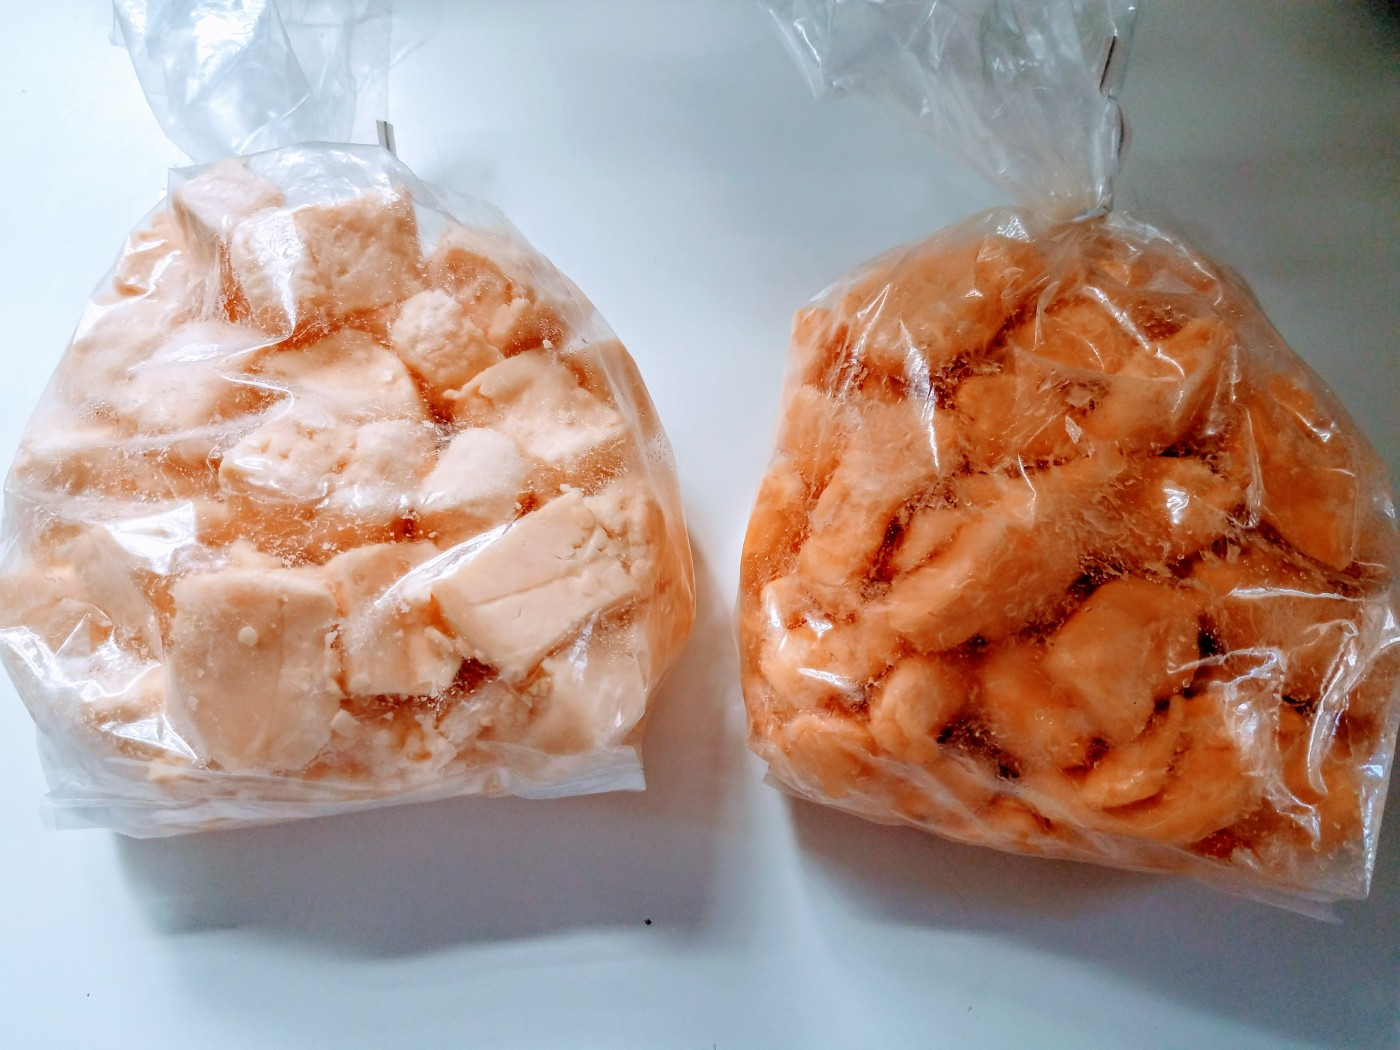 Wimder's Cheese curds in bags